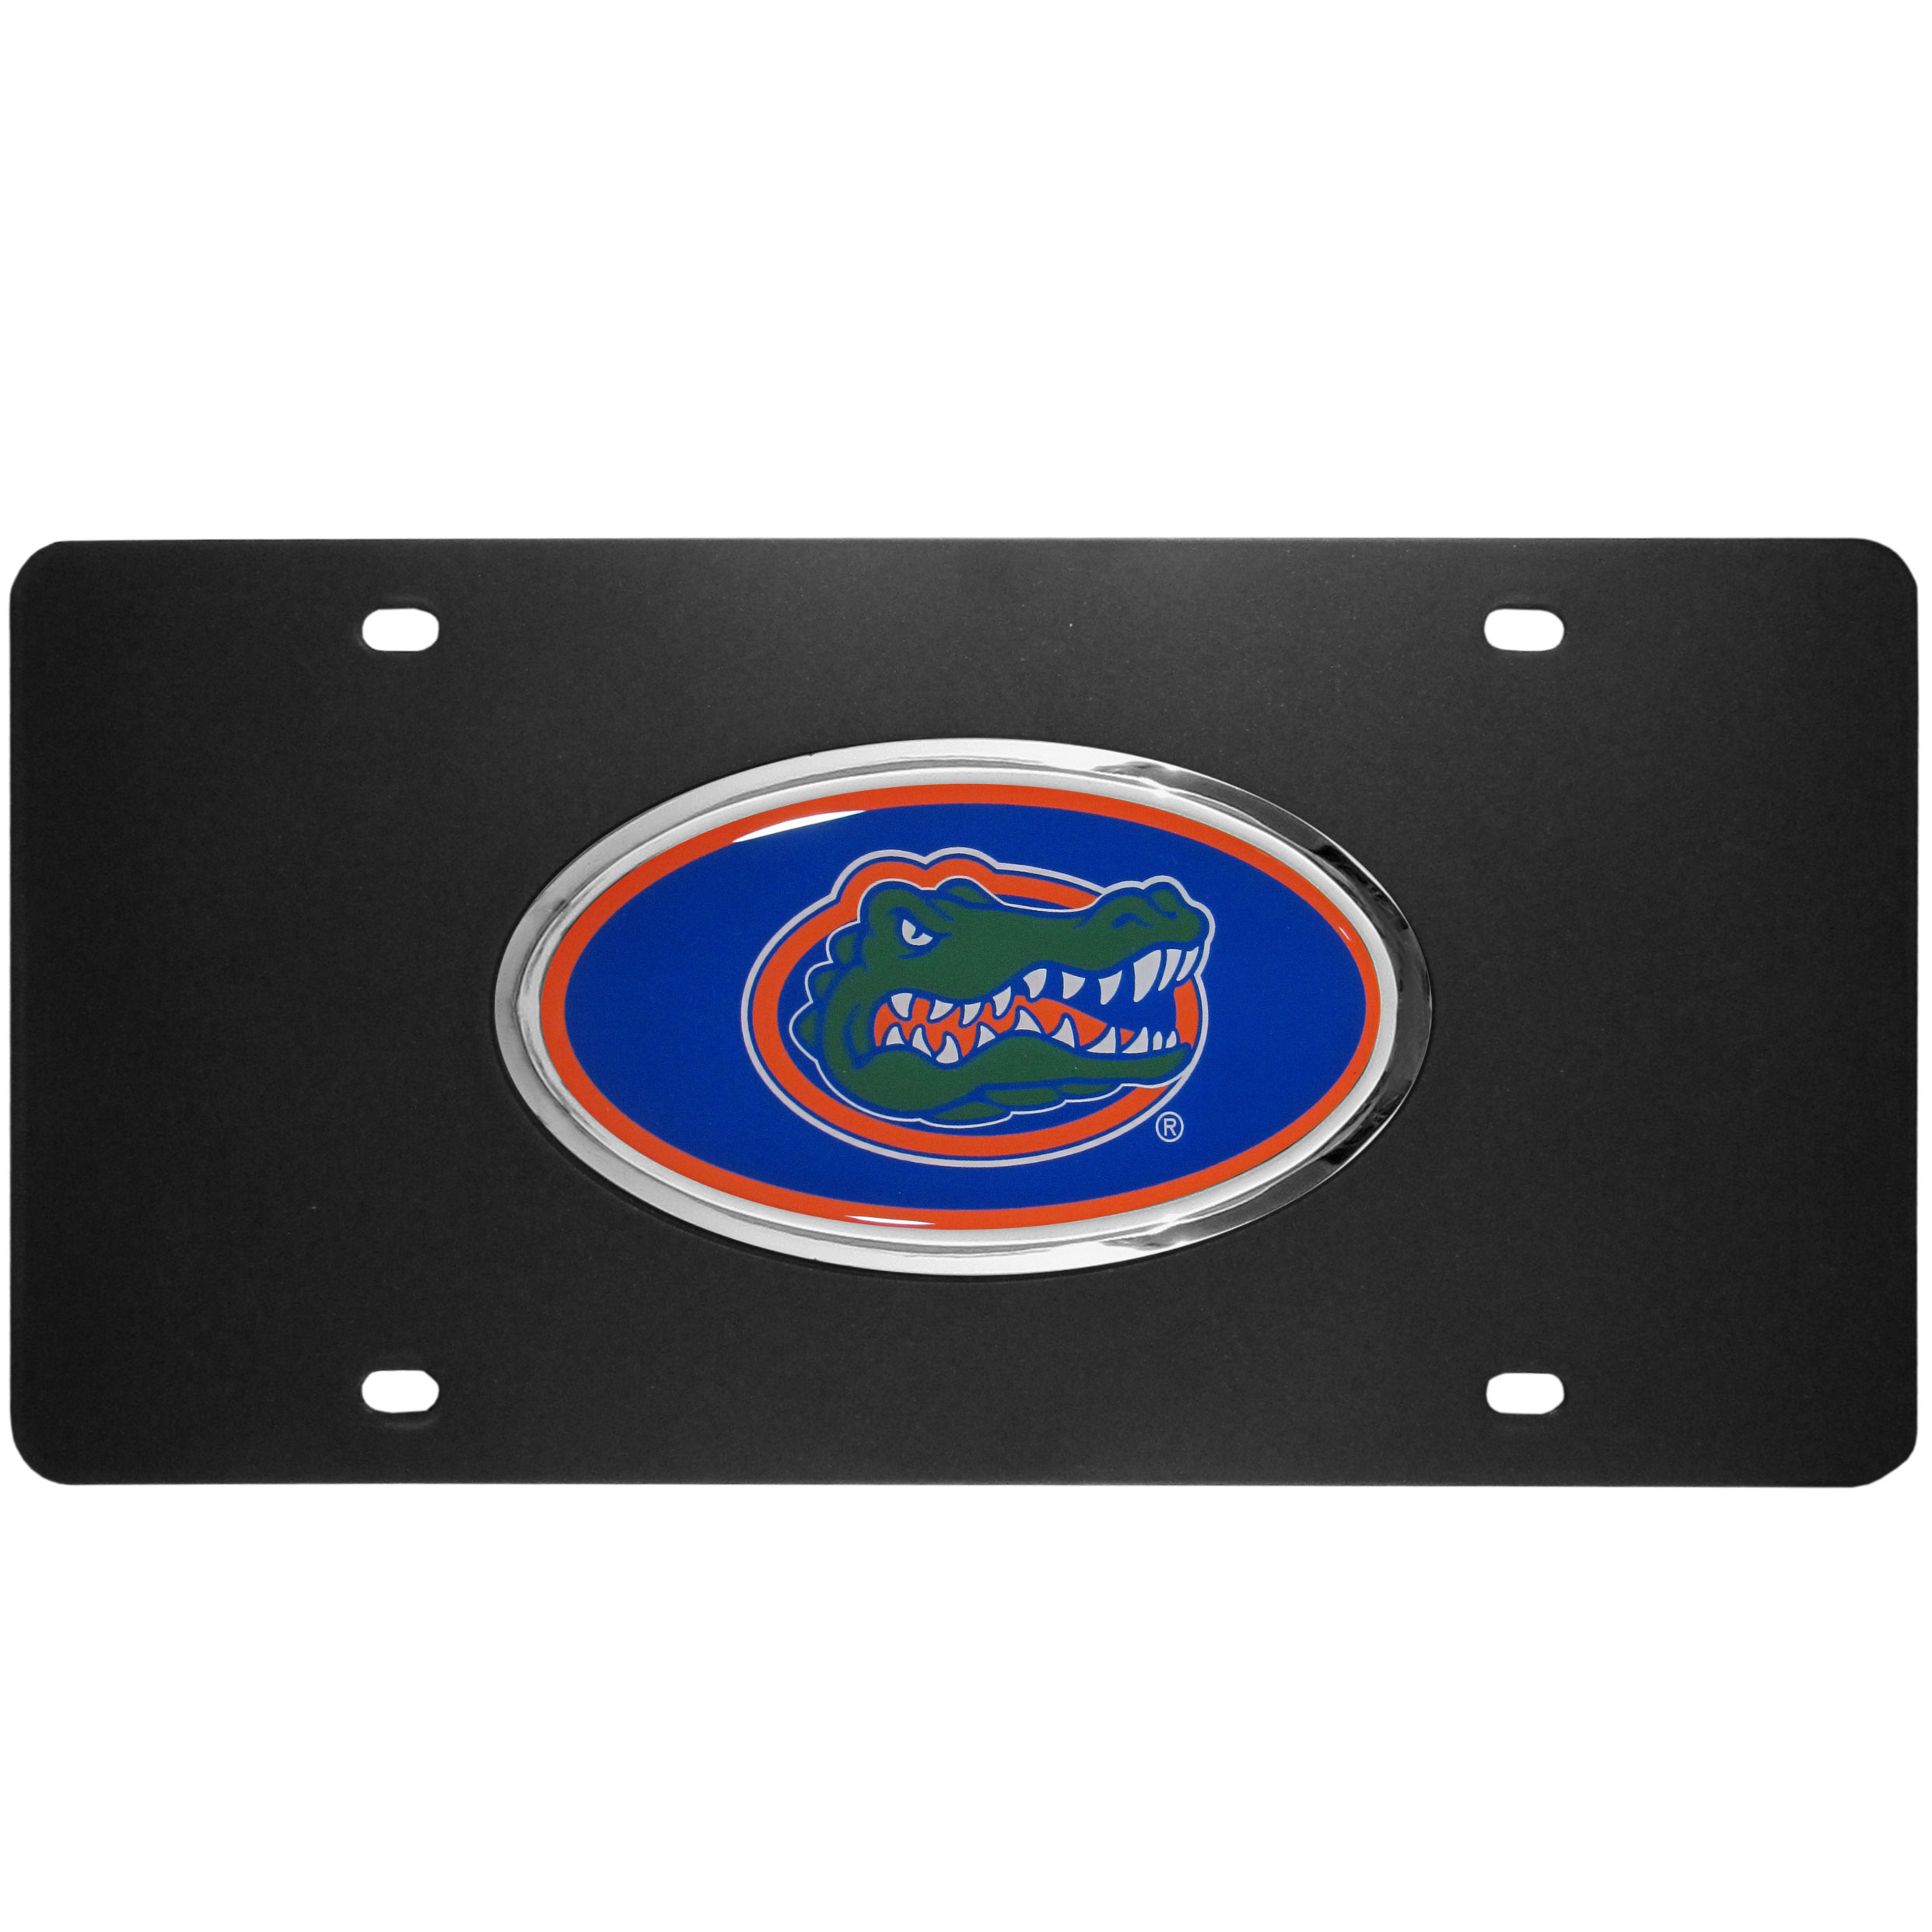 Florida Gators Acrylic License Plate - Our Florida Gators acrylic license plate is a step above the rest. It is made of thick, durable acrylic with a matte black finish and raised chrome saddle for the extra large team emblem.